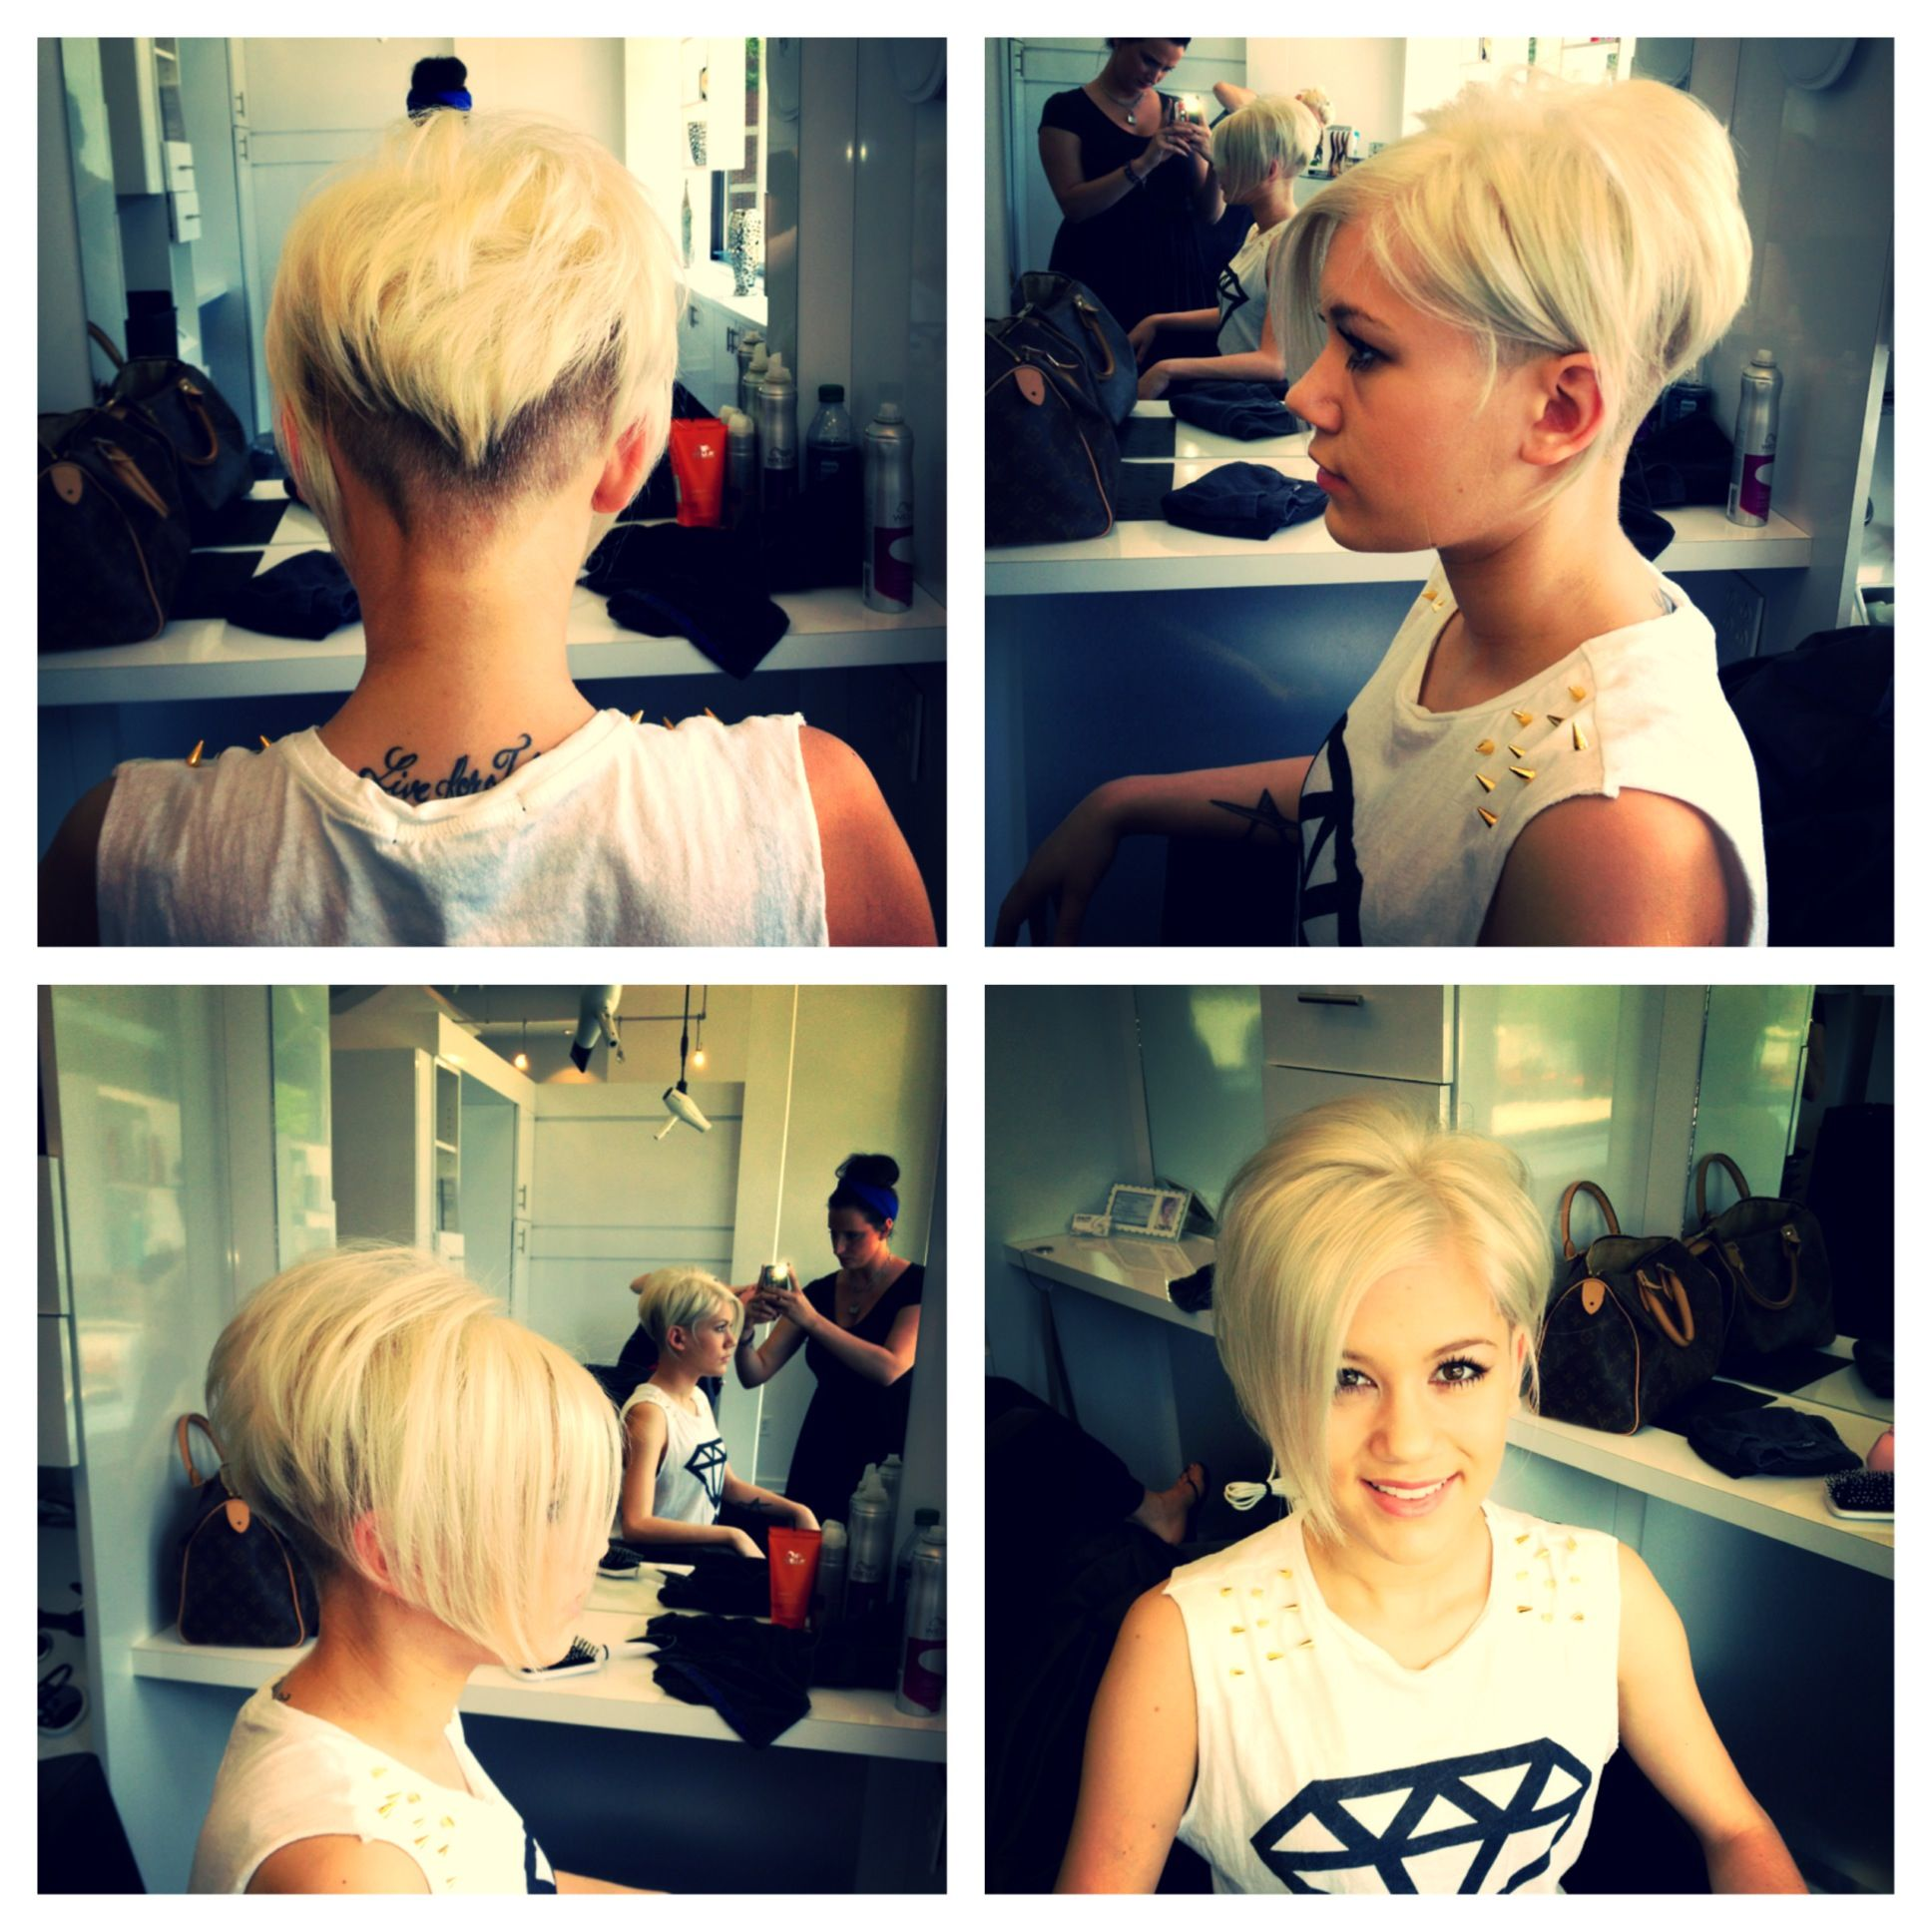 Icey blonde with shaved sides down to Mohawk! Not sure about the shaved neckline, but could easily keep hair longer and use this as a bob while growing out a pixie.